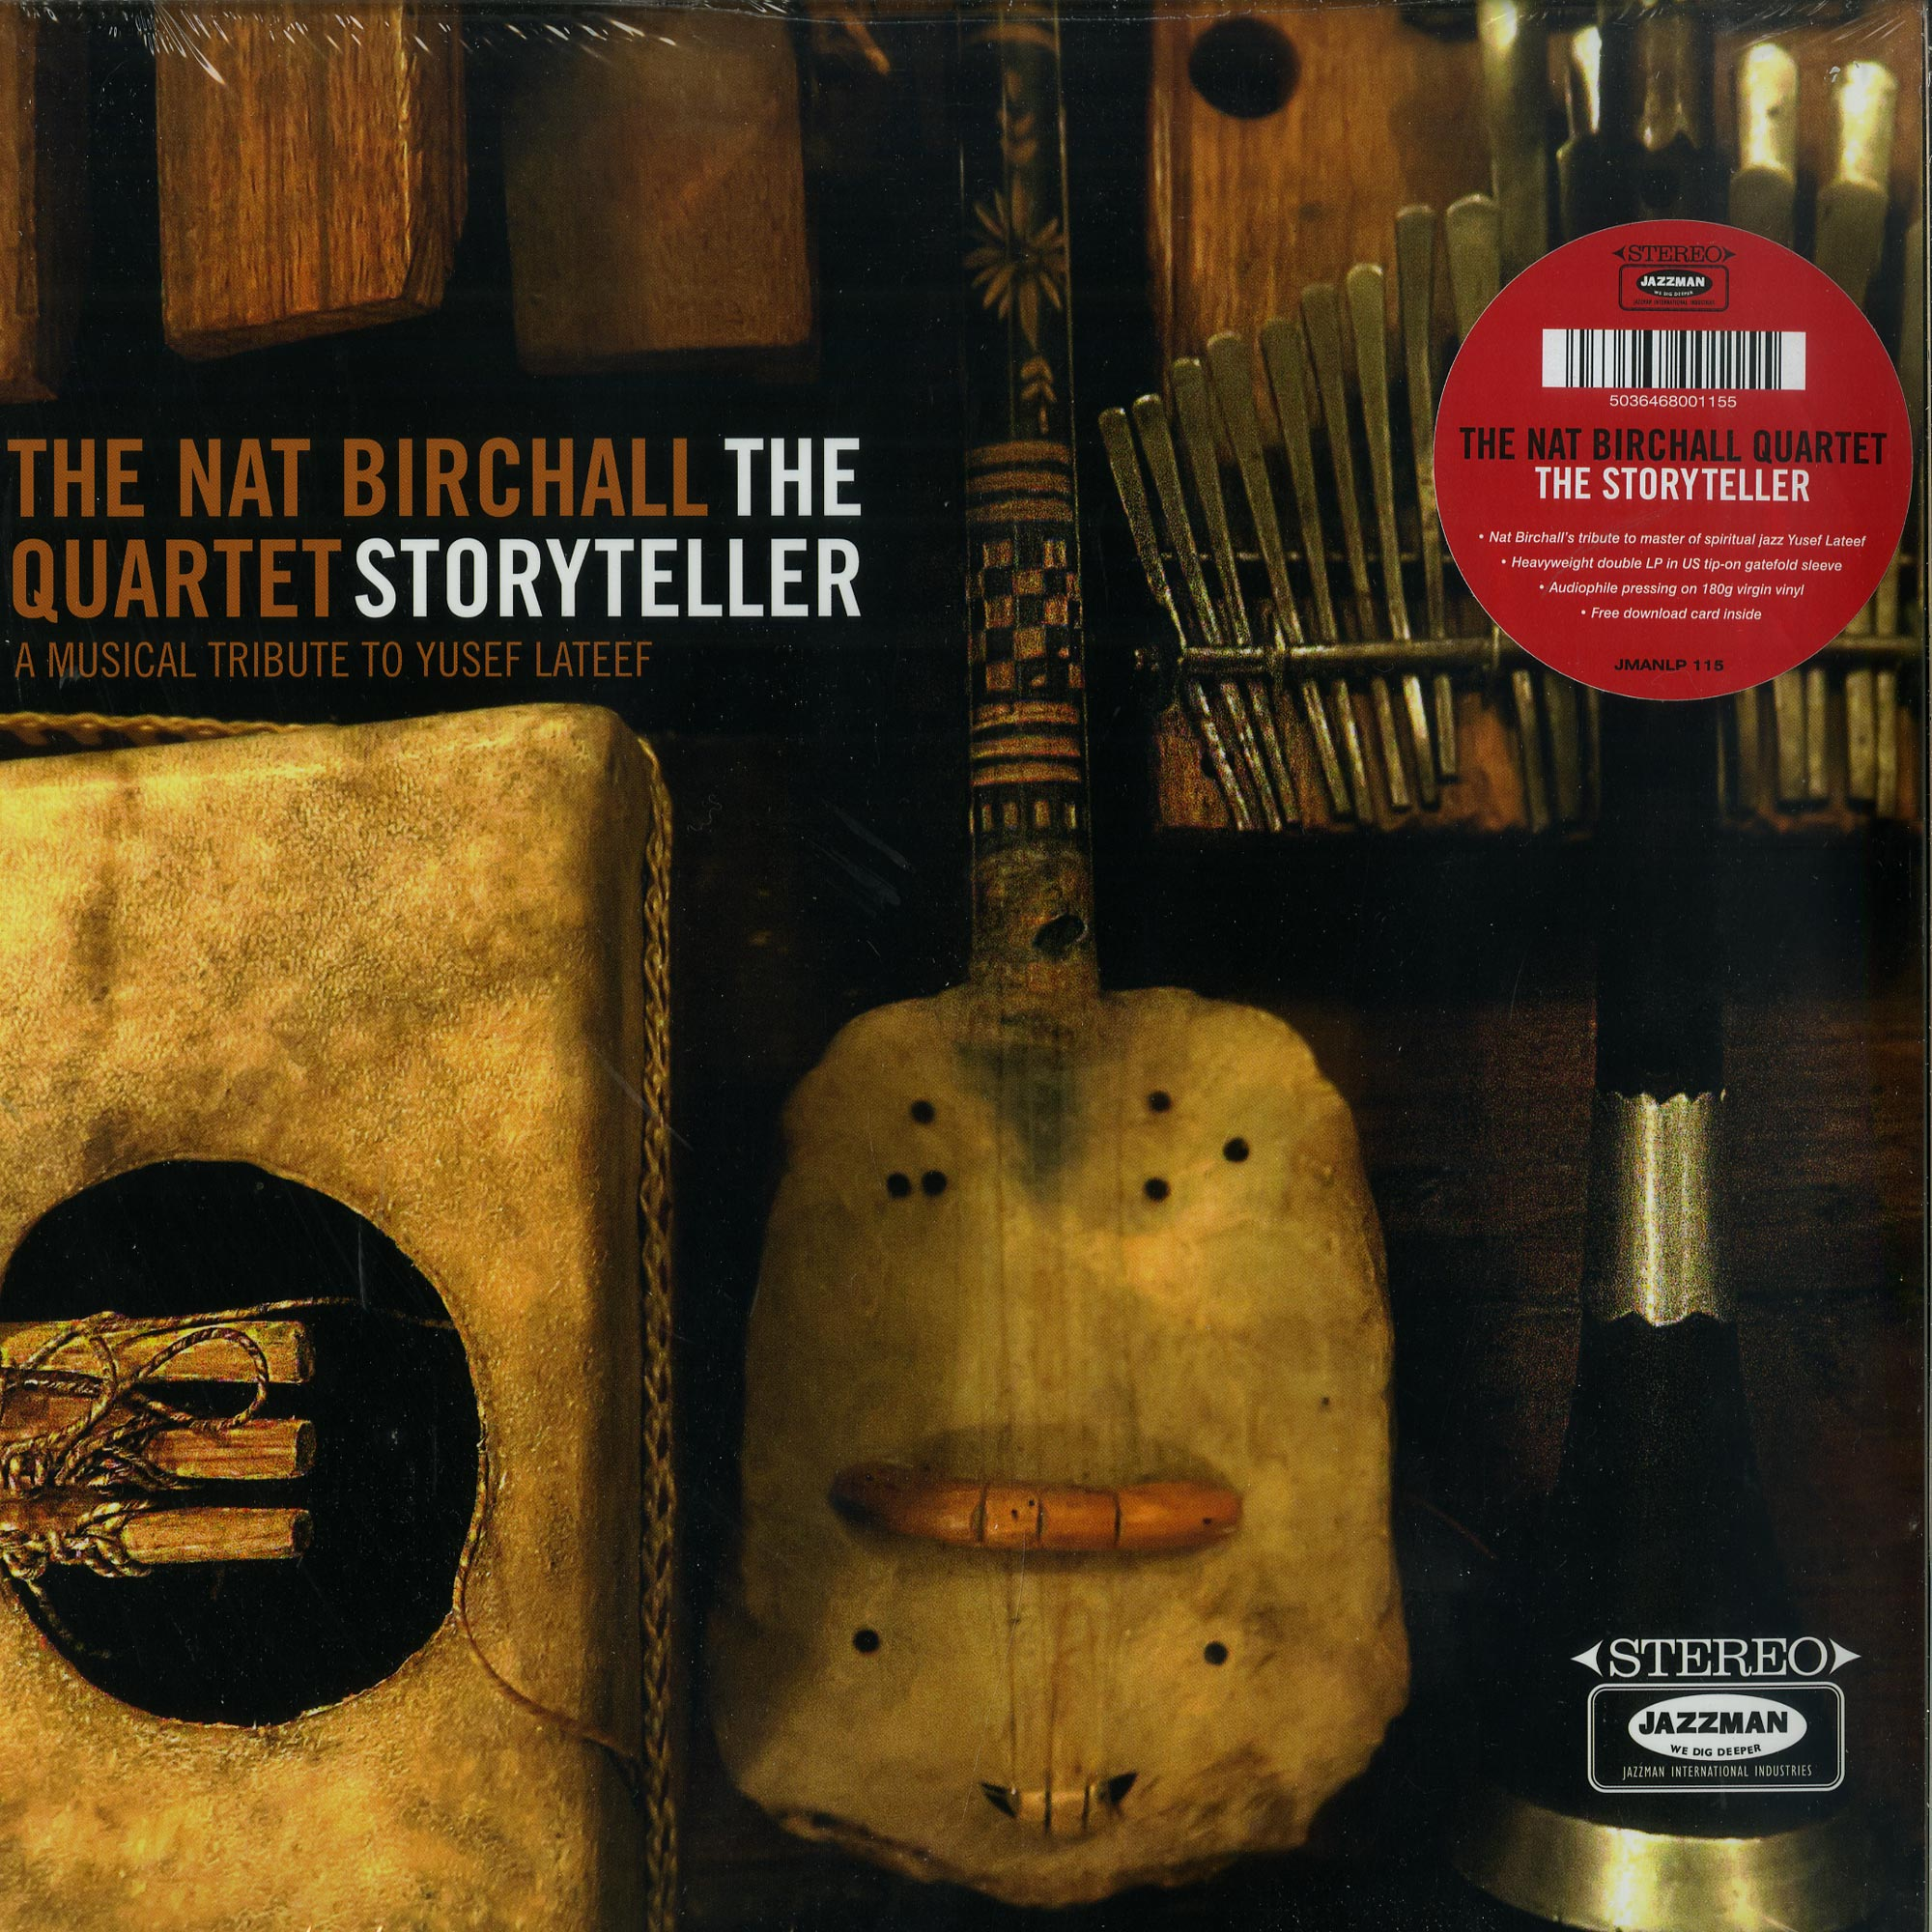 The Nat Birchall Quartet - THE STORYTELLER -  A MUSICAL TRIBUTE TO YUSEF LATEEF